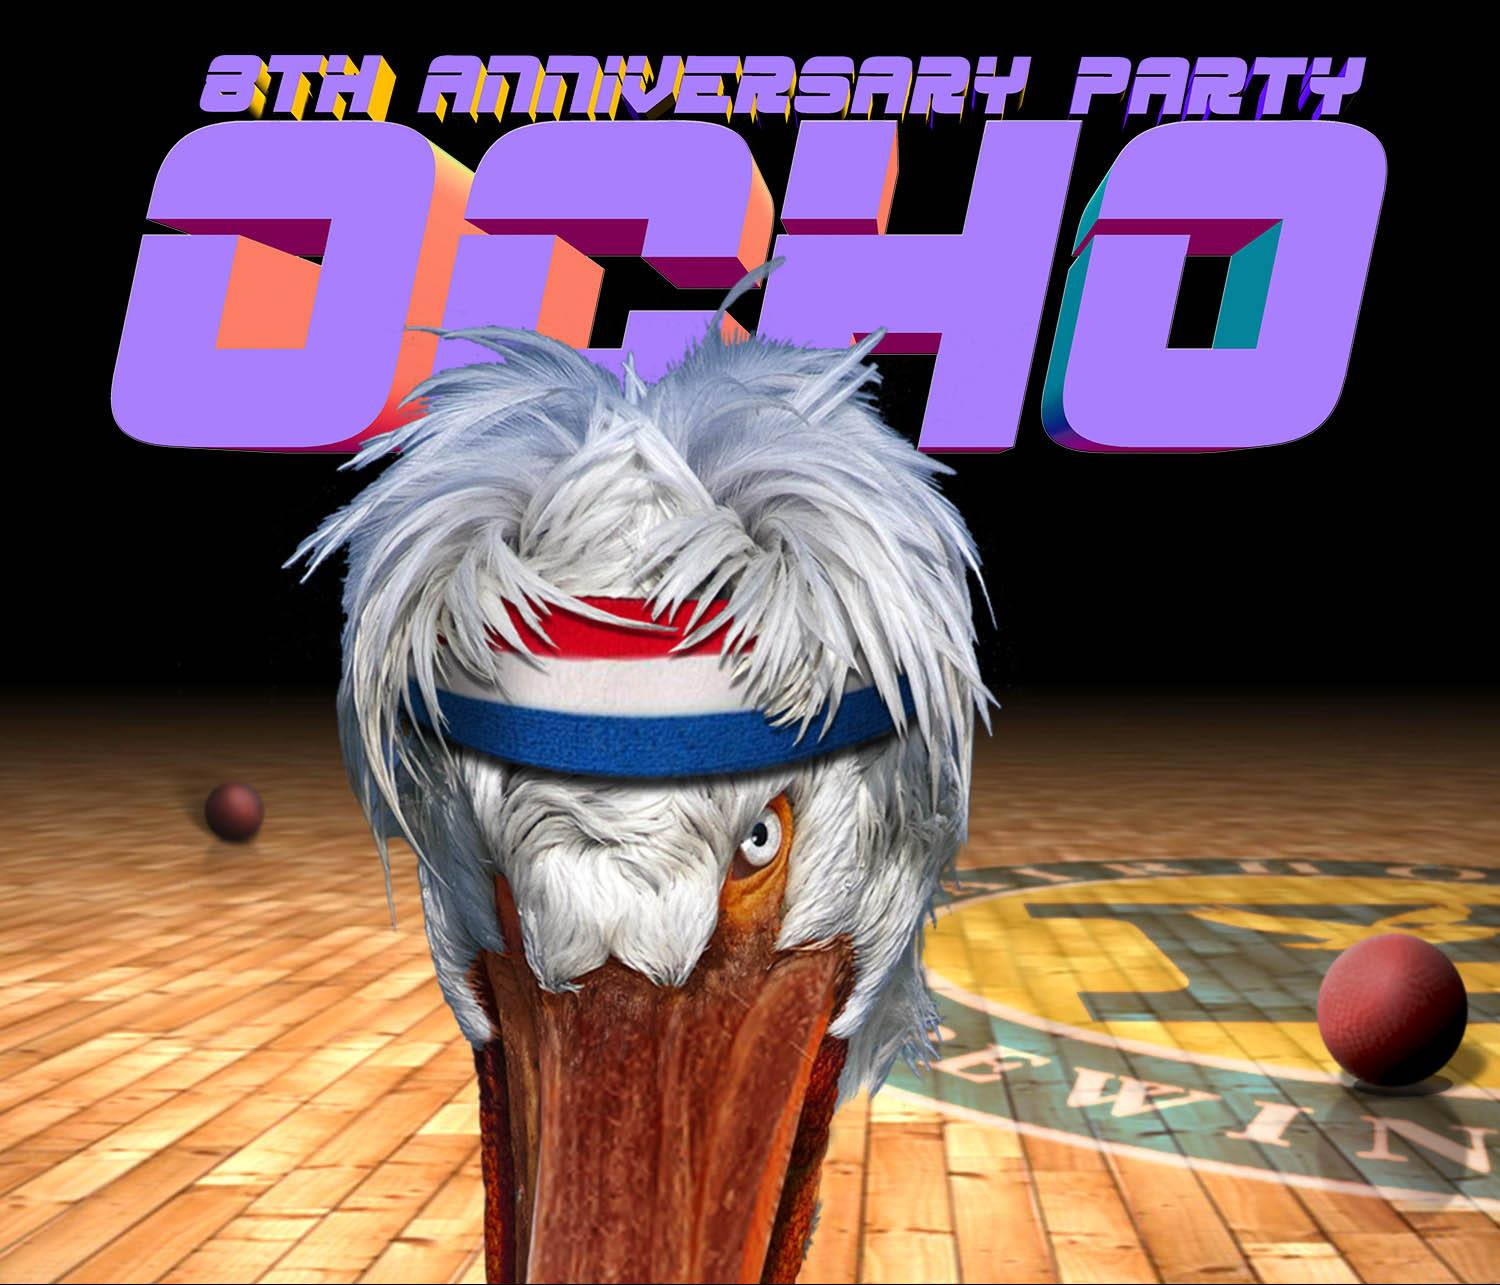 8th Anniversary Party - Coming Soon